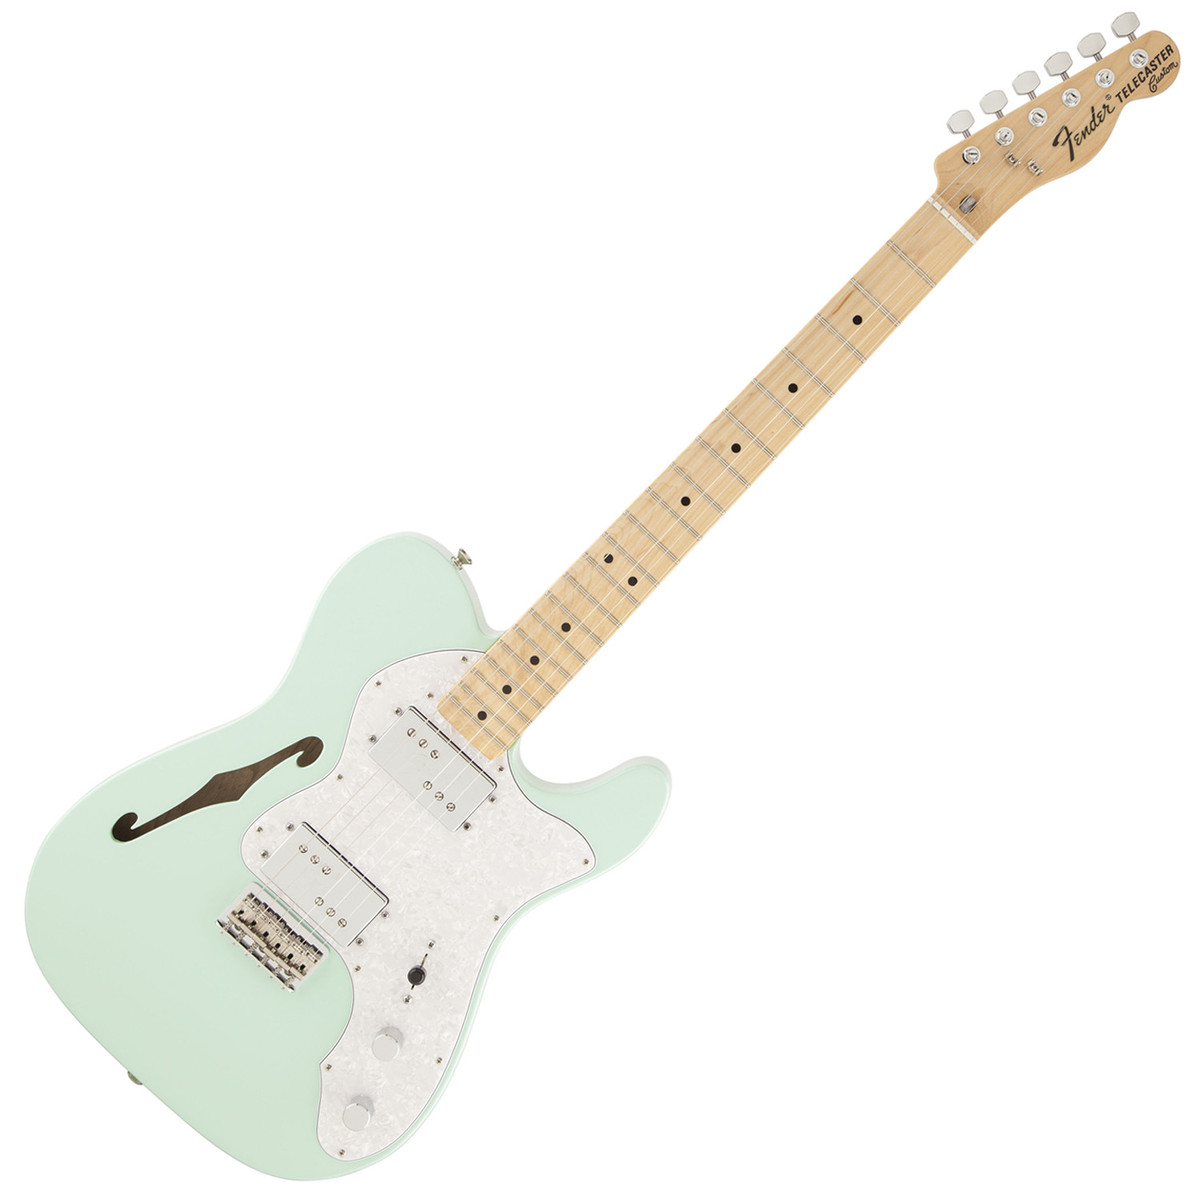 fender special edition 39 72 tele thinline mn surf green at gear4music. Black Bedroom Furniture Sets. Home Design Ideas